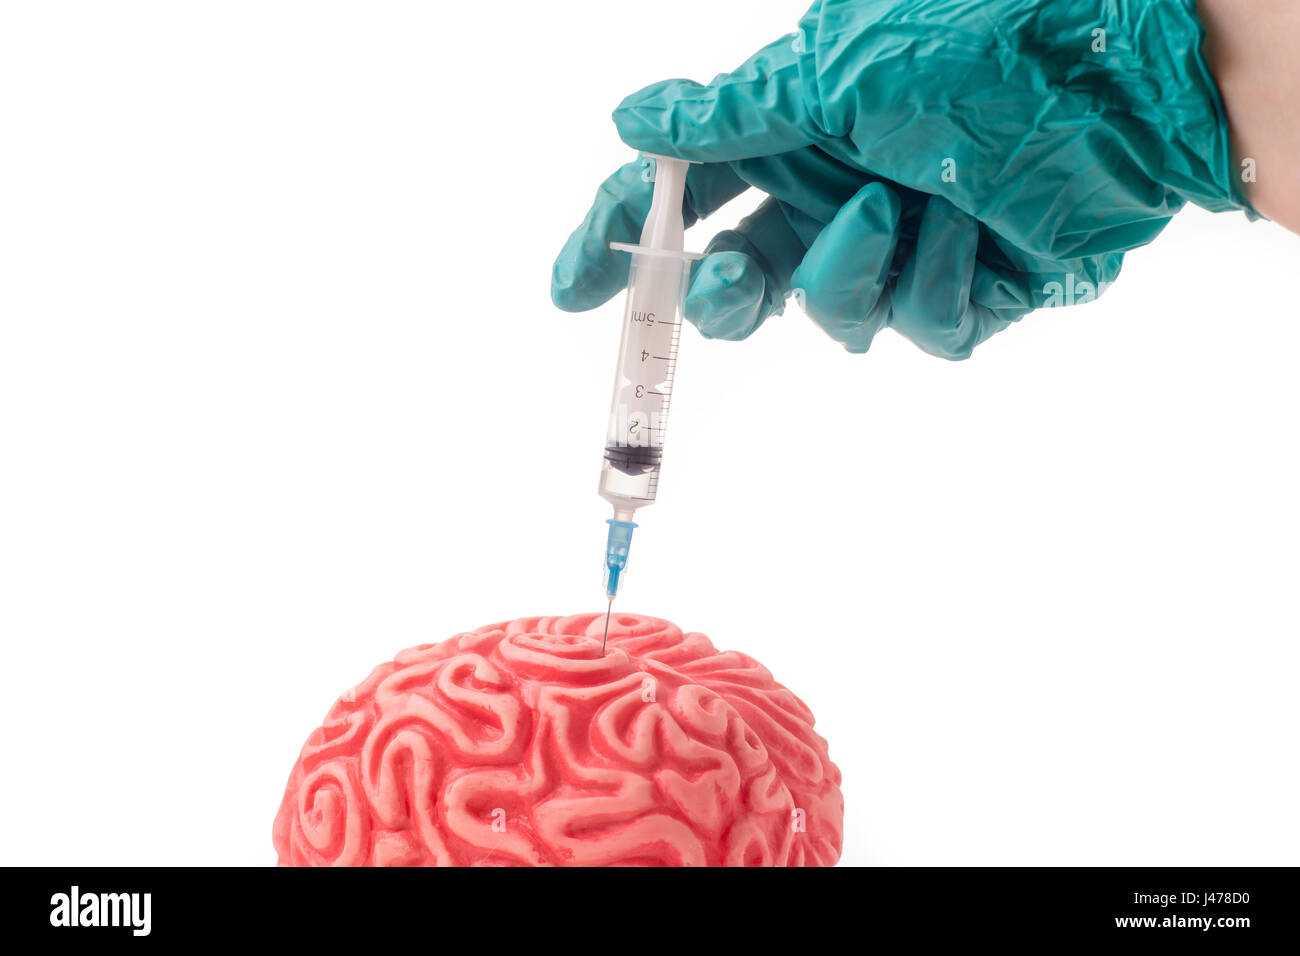 Brain injected with unknown drug. The injection is given by hand with green protective glove and is isolated on - Stock Image